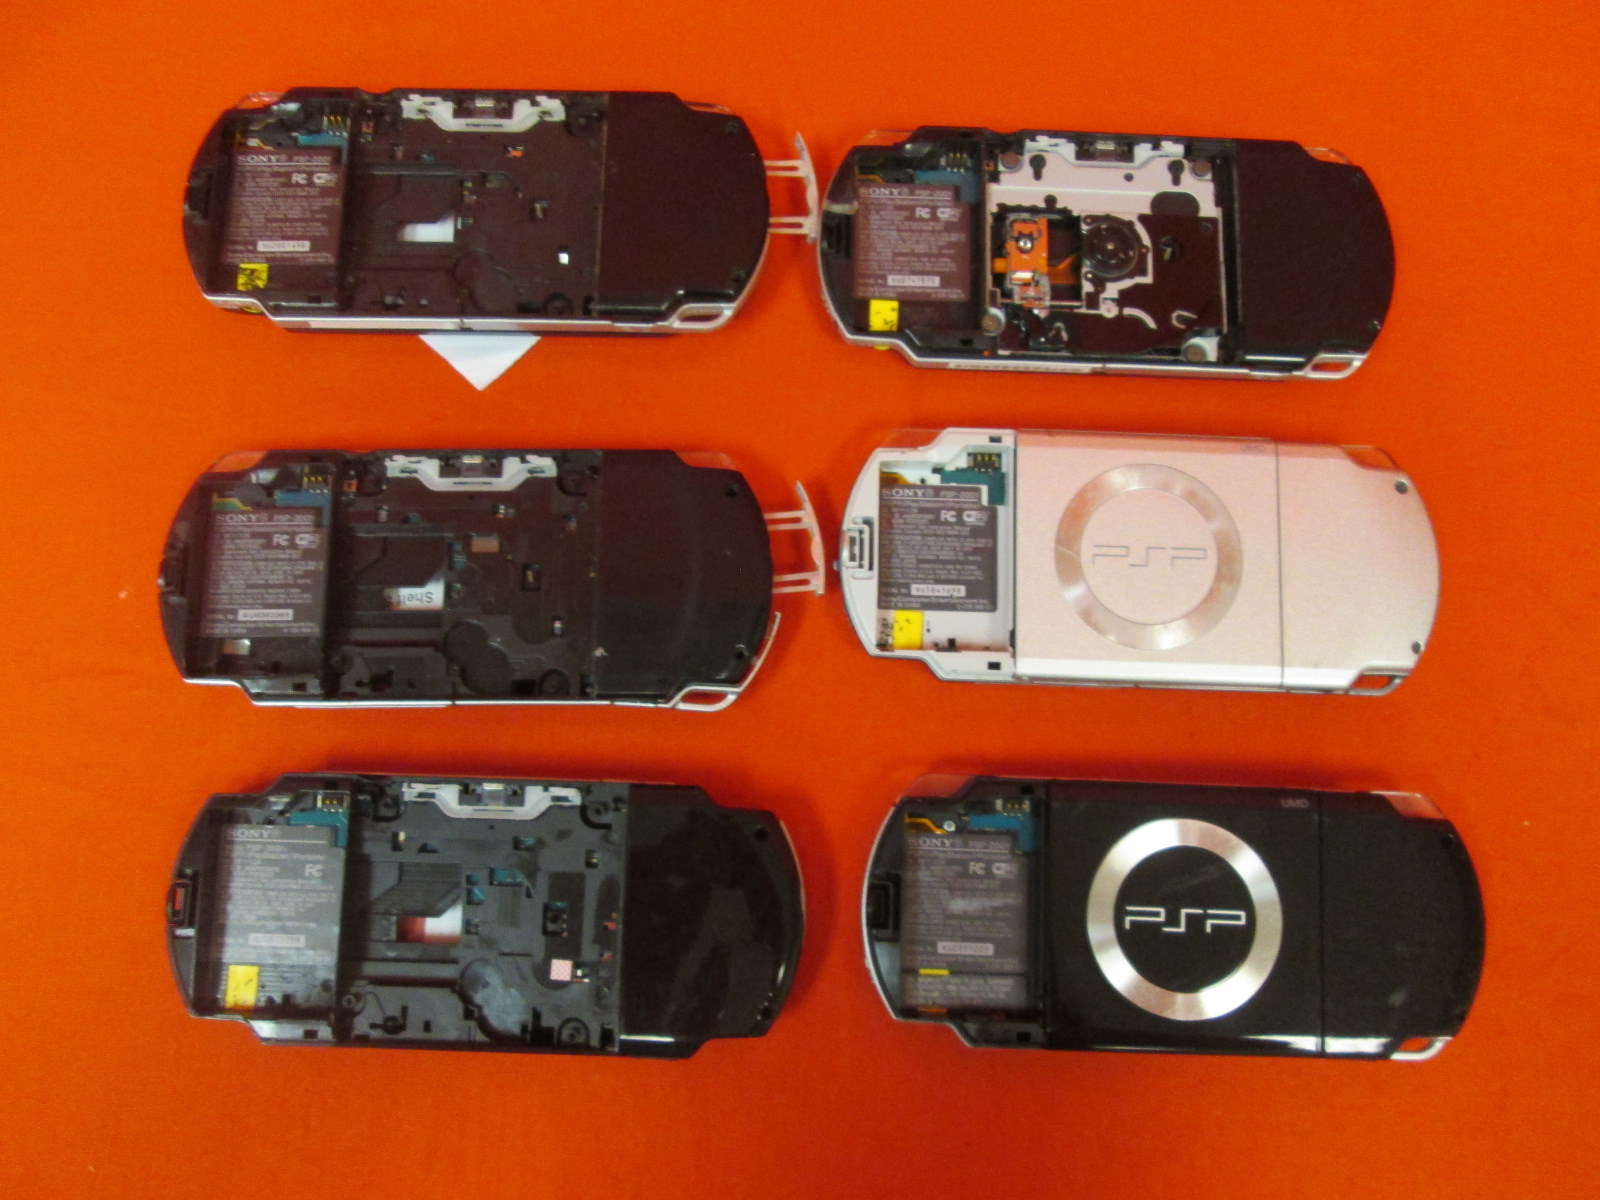 Broken Lot Of PSP Handheld Consoles Broken